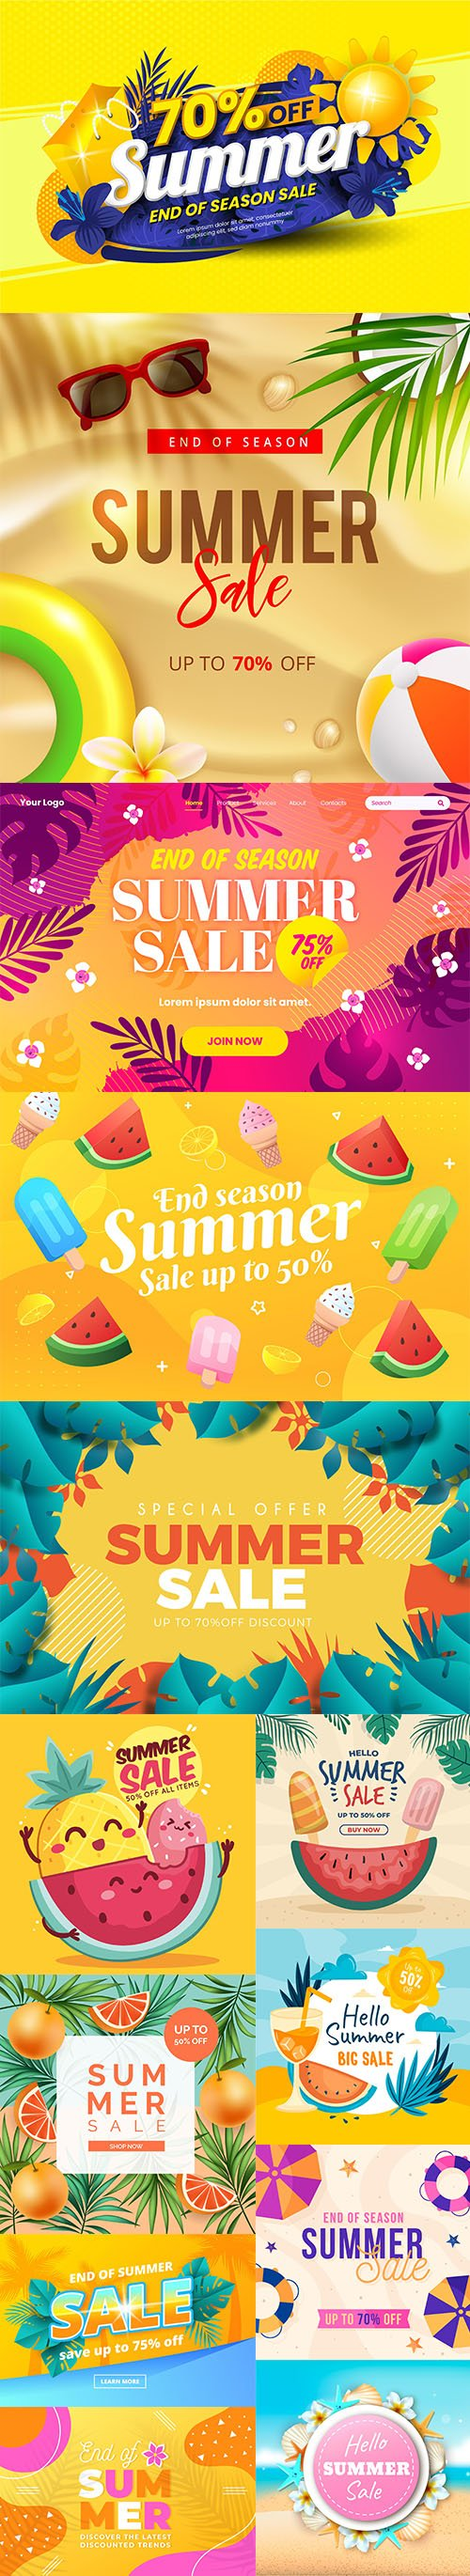 Colorful summer sale backgrounds set